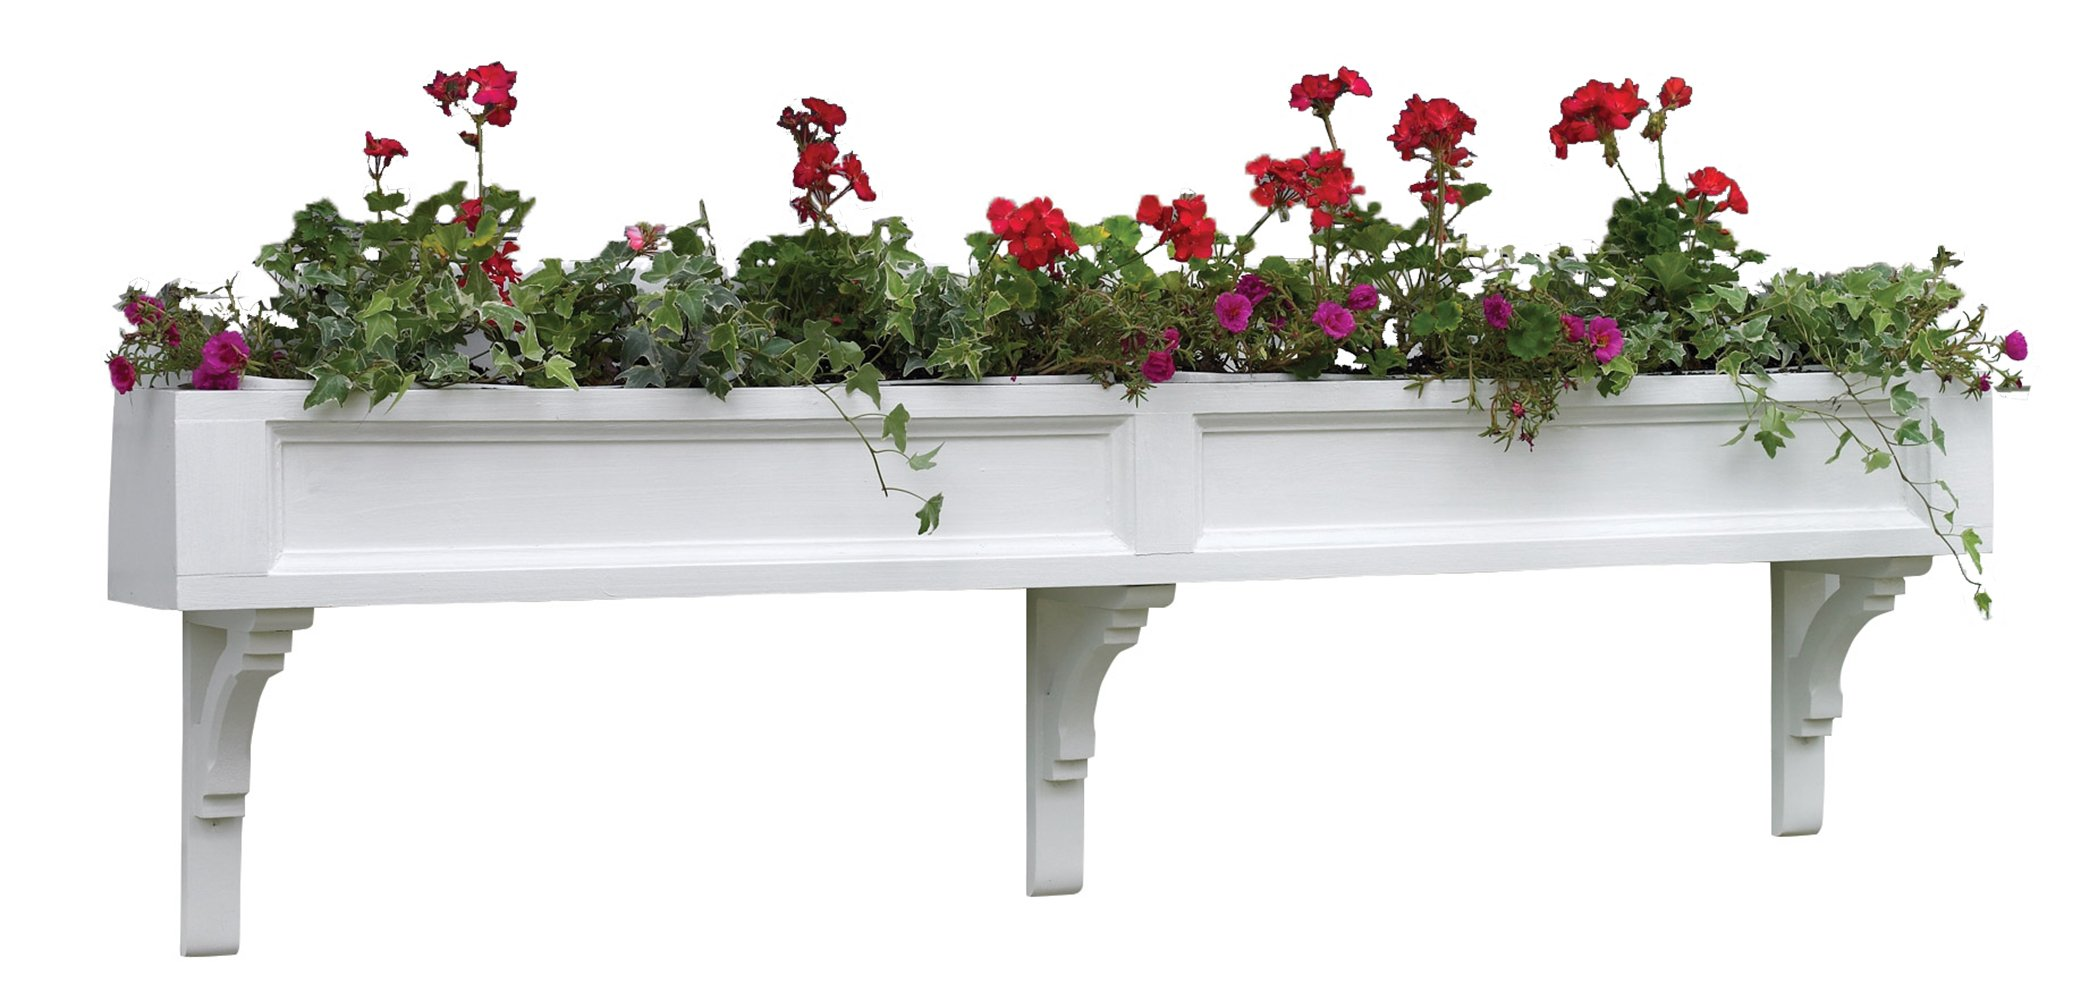 Lazy Hill Farm Designs 999034 Federal Cedar Window Box White with 3 Decorative Mounting Brackets, 60-Inch Width by 7-Inch Height by 7 3/4-Inch Depth by Good Directions